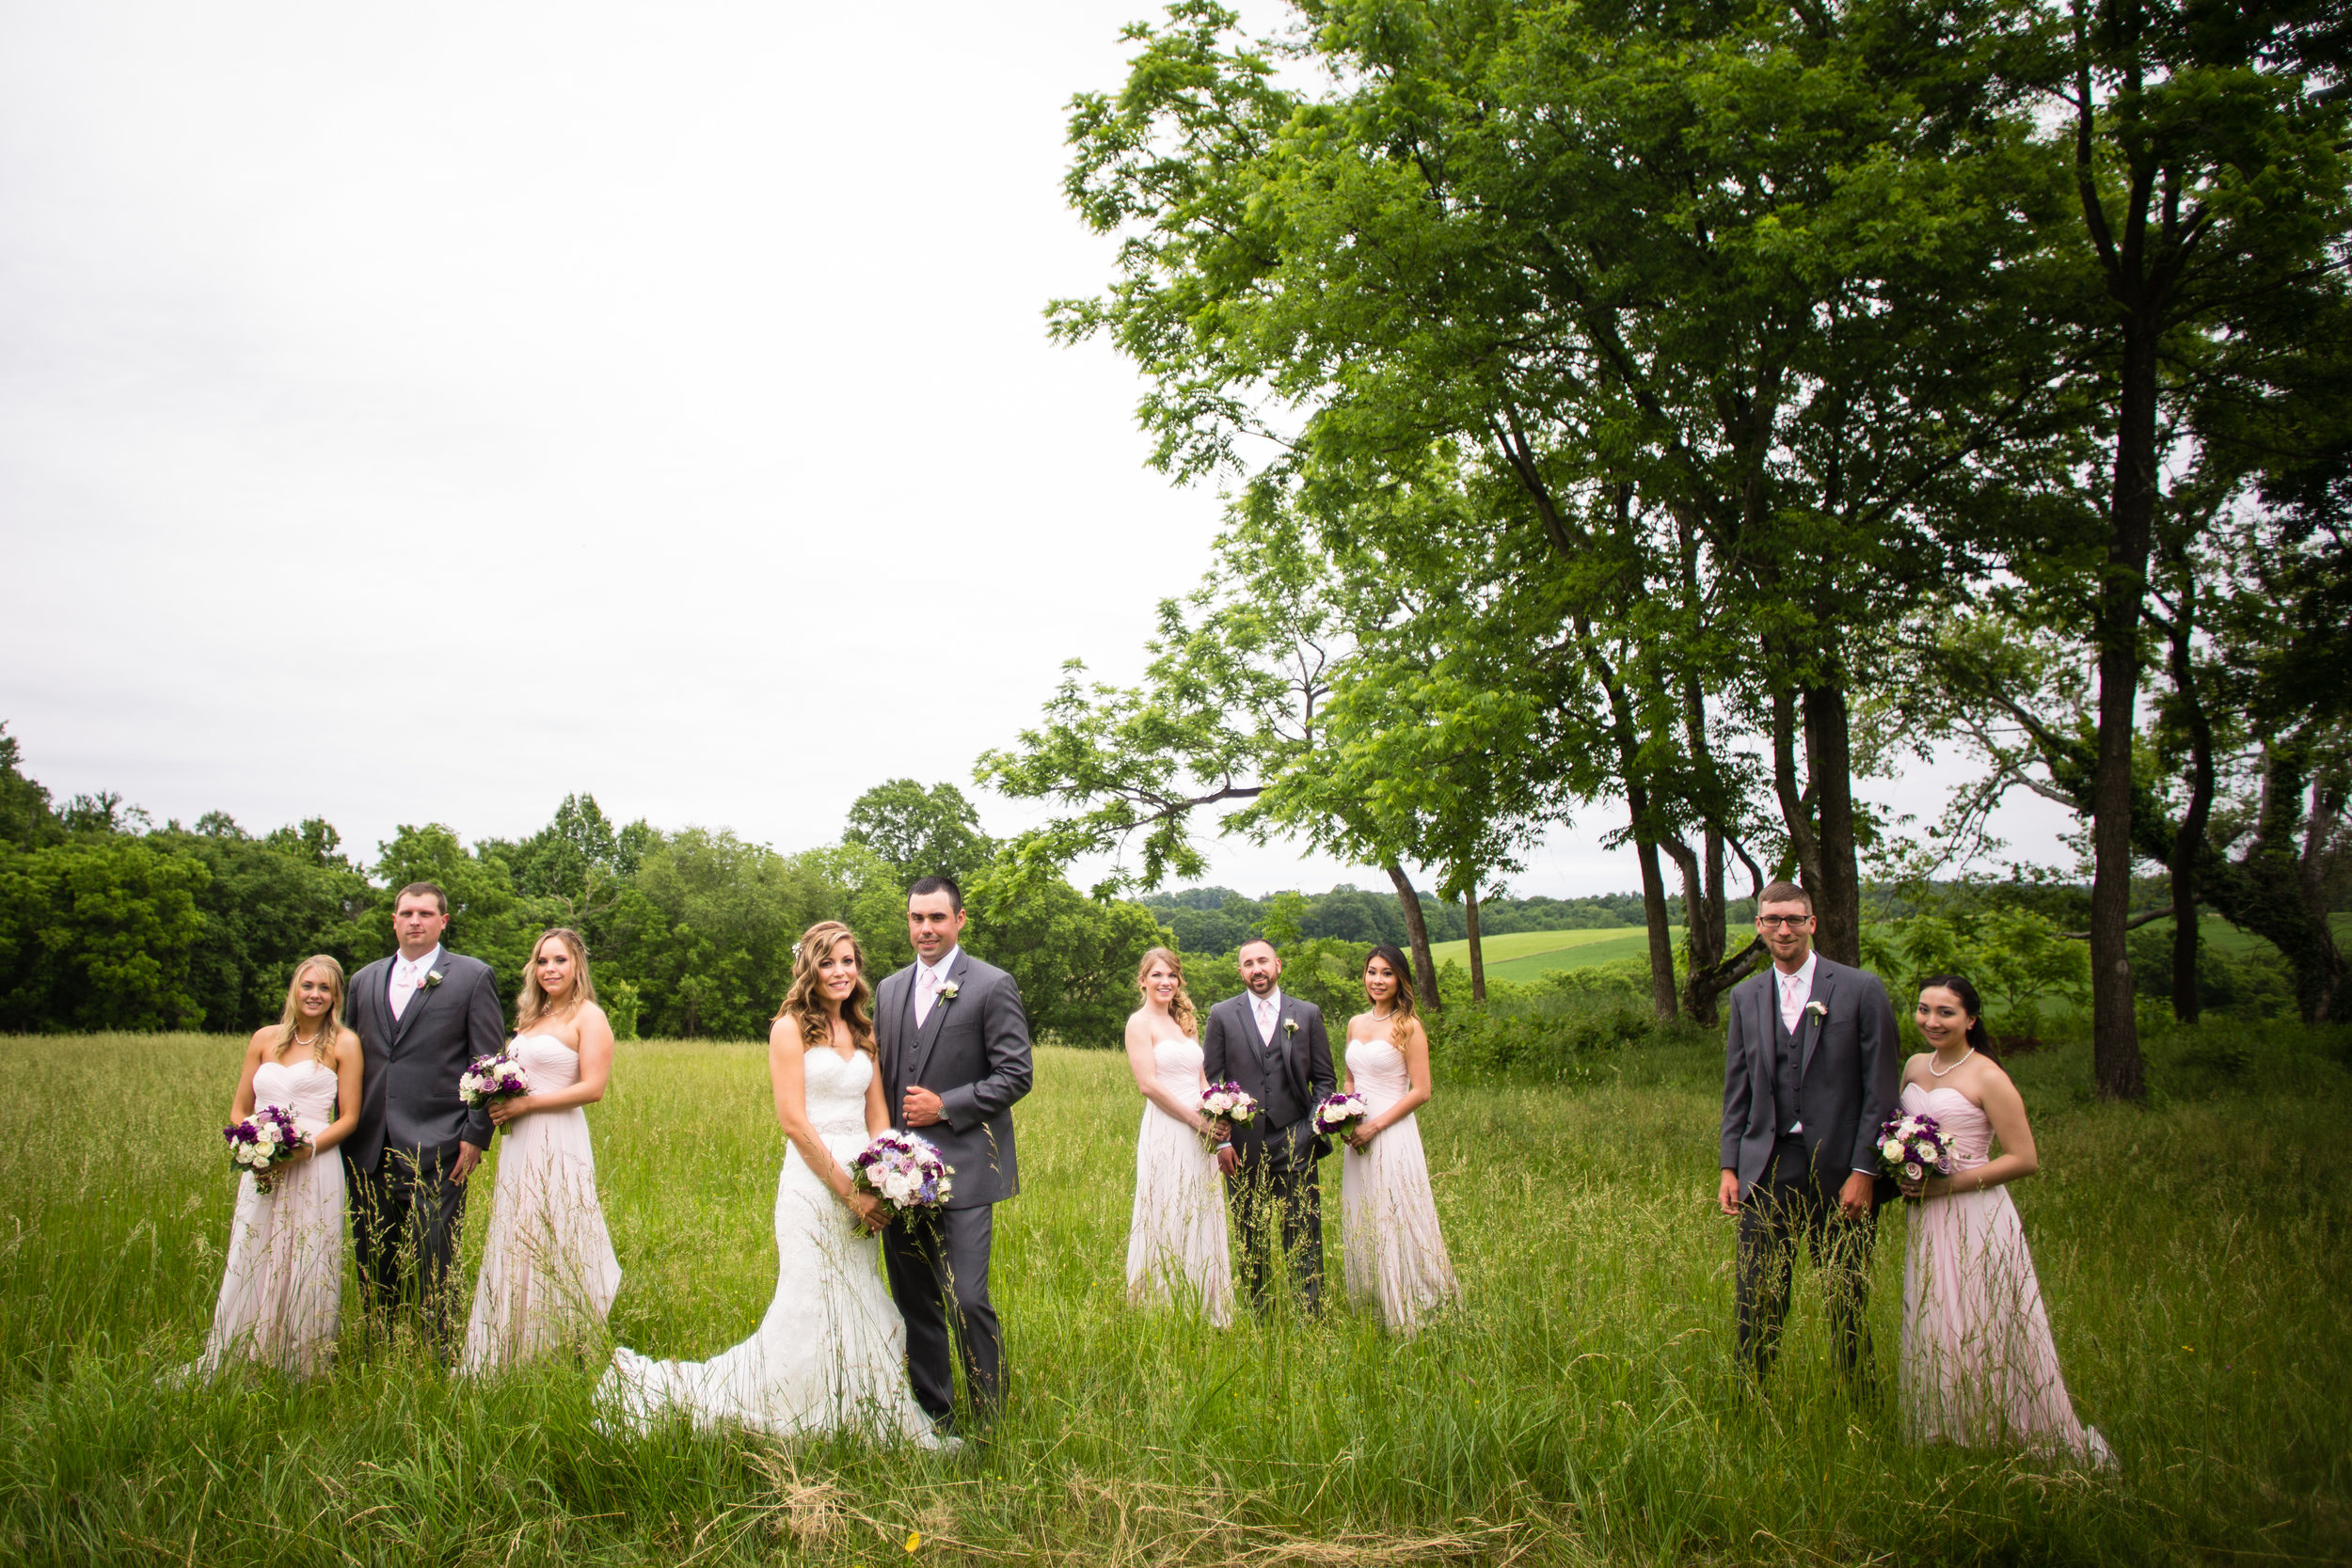 Lepold-Johnson-Bridal-party-field.jpg